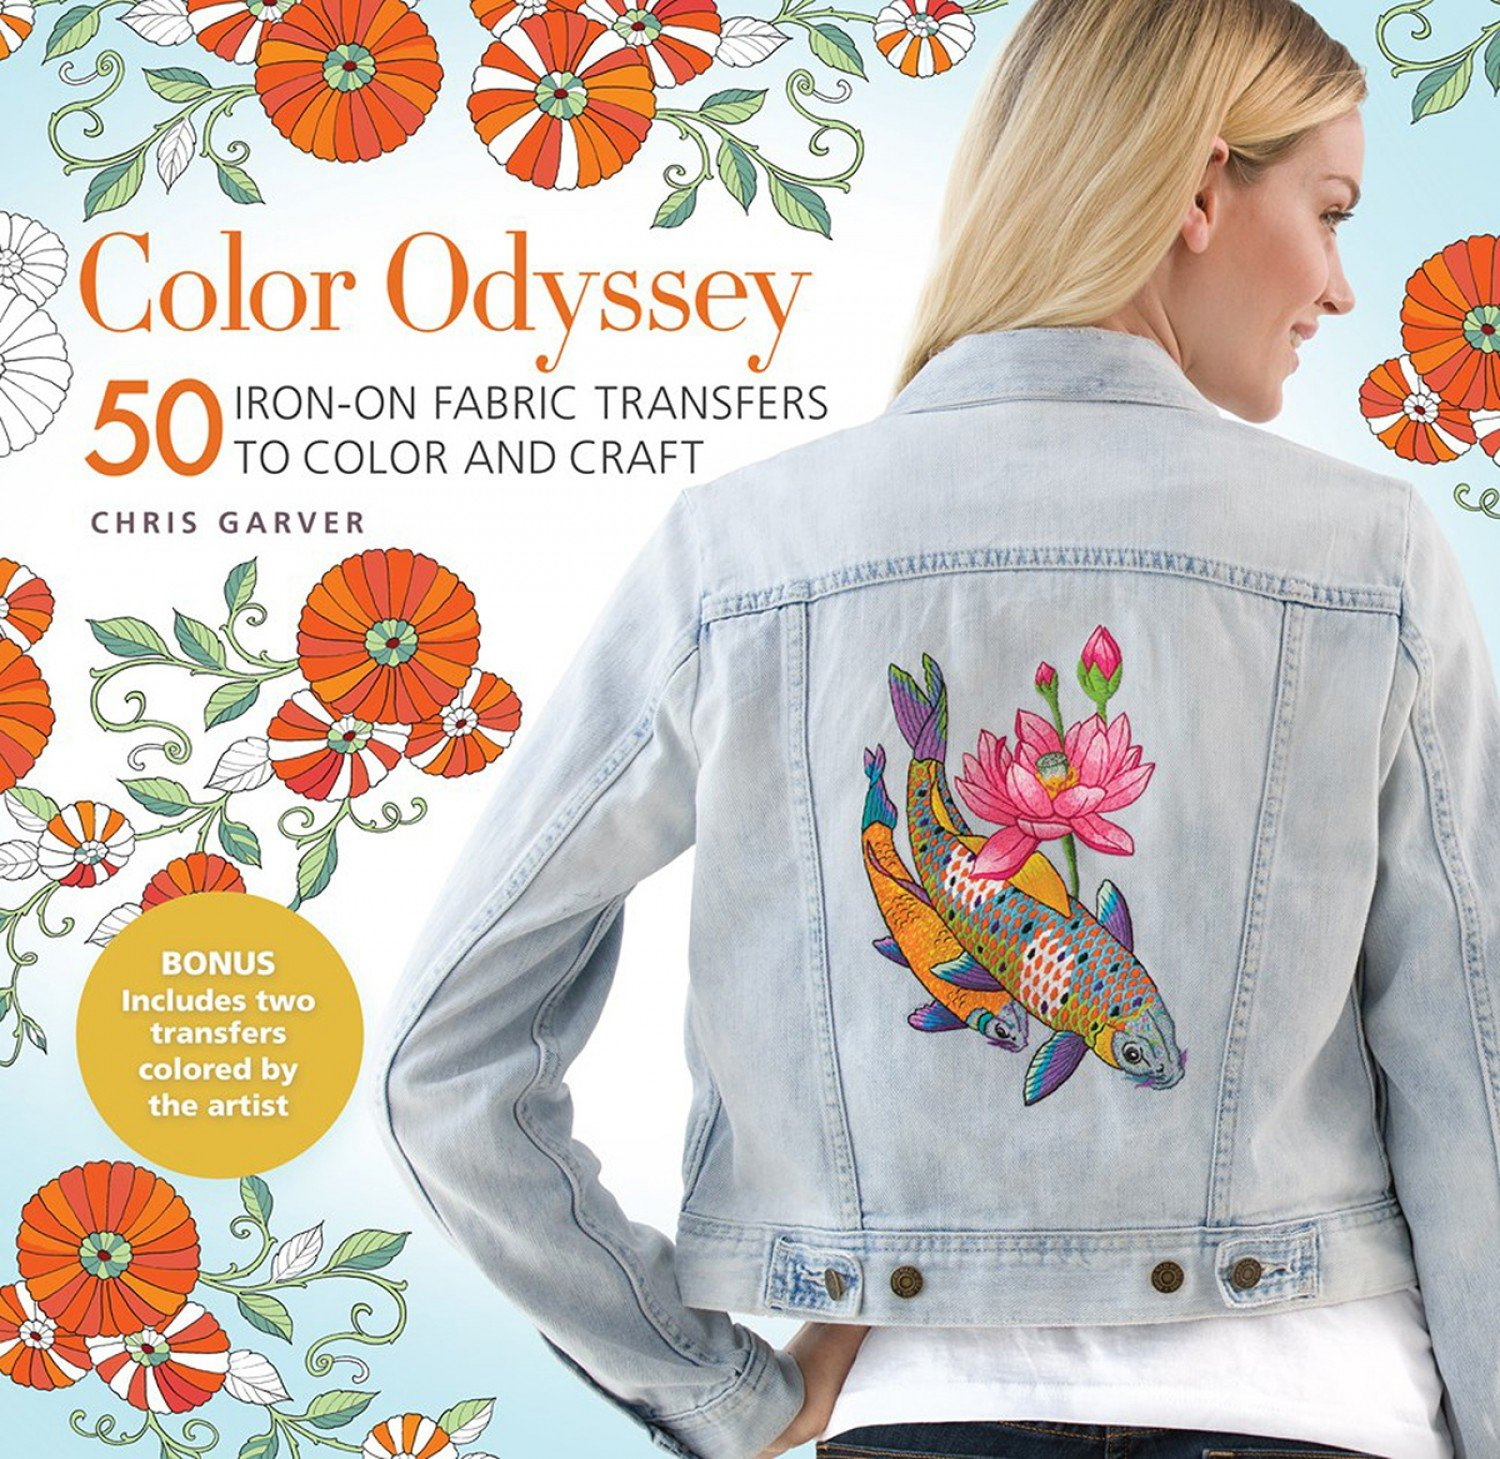 Color Odyssey: 50 Iron-On Fabric Transfers to Color